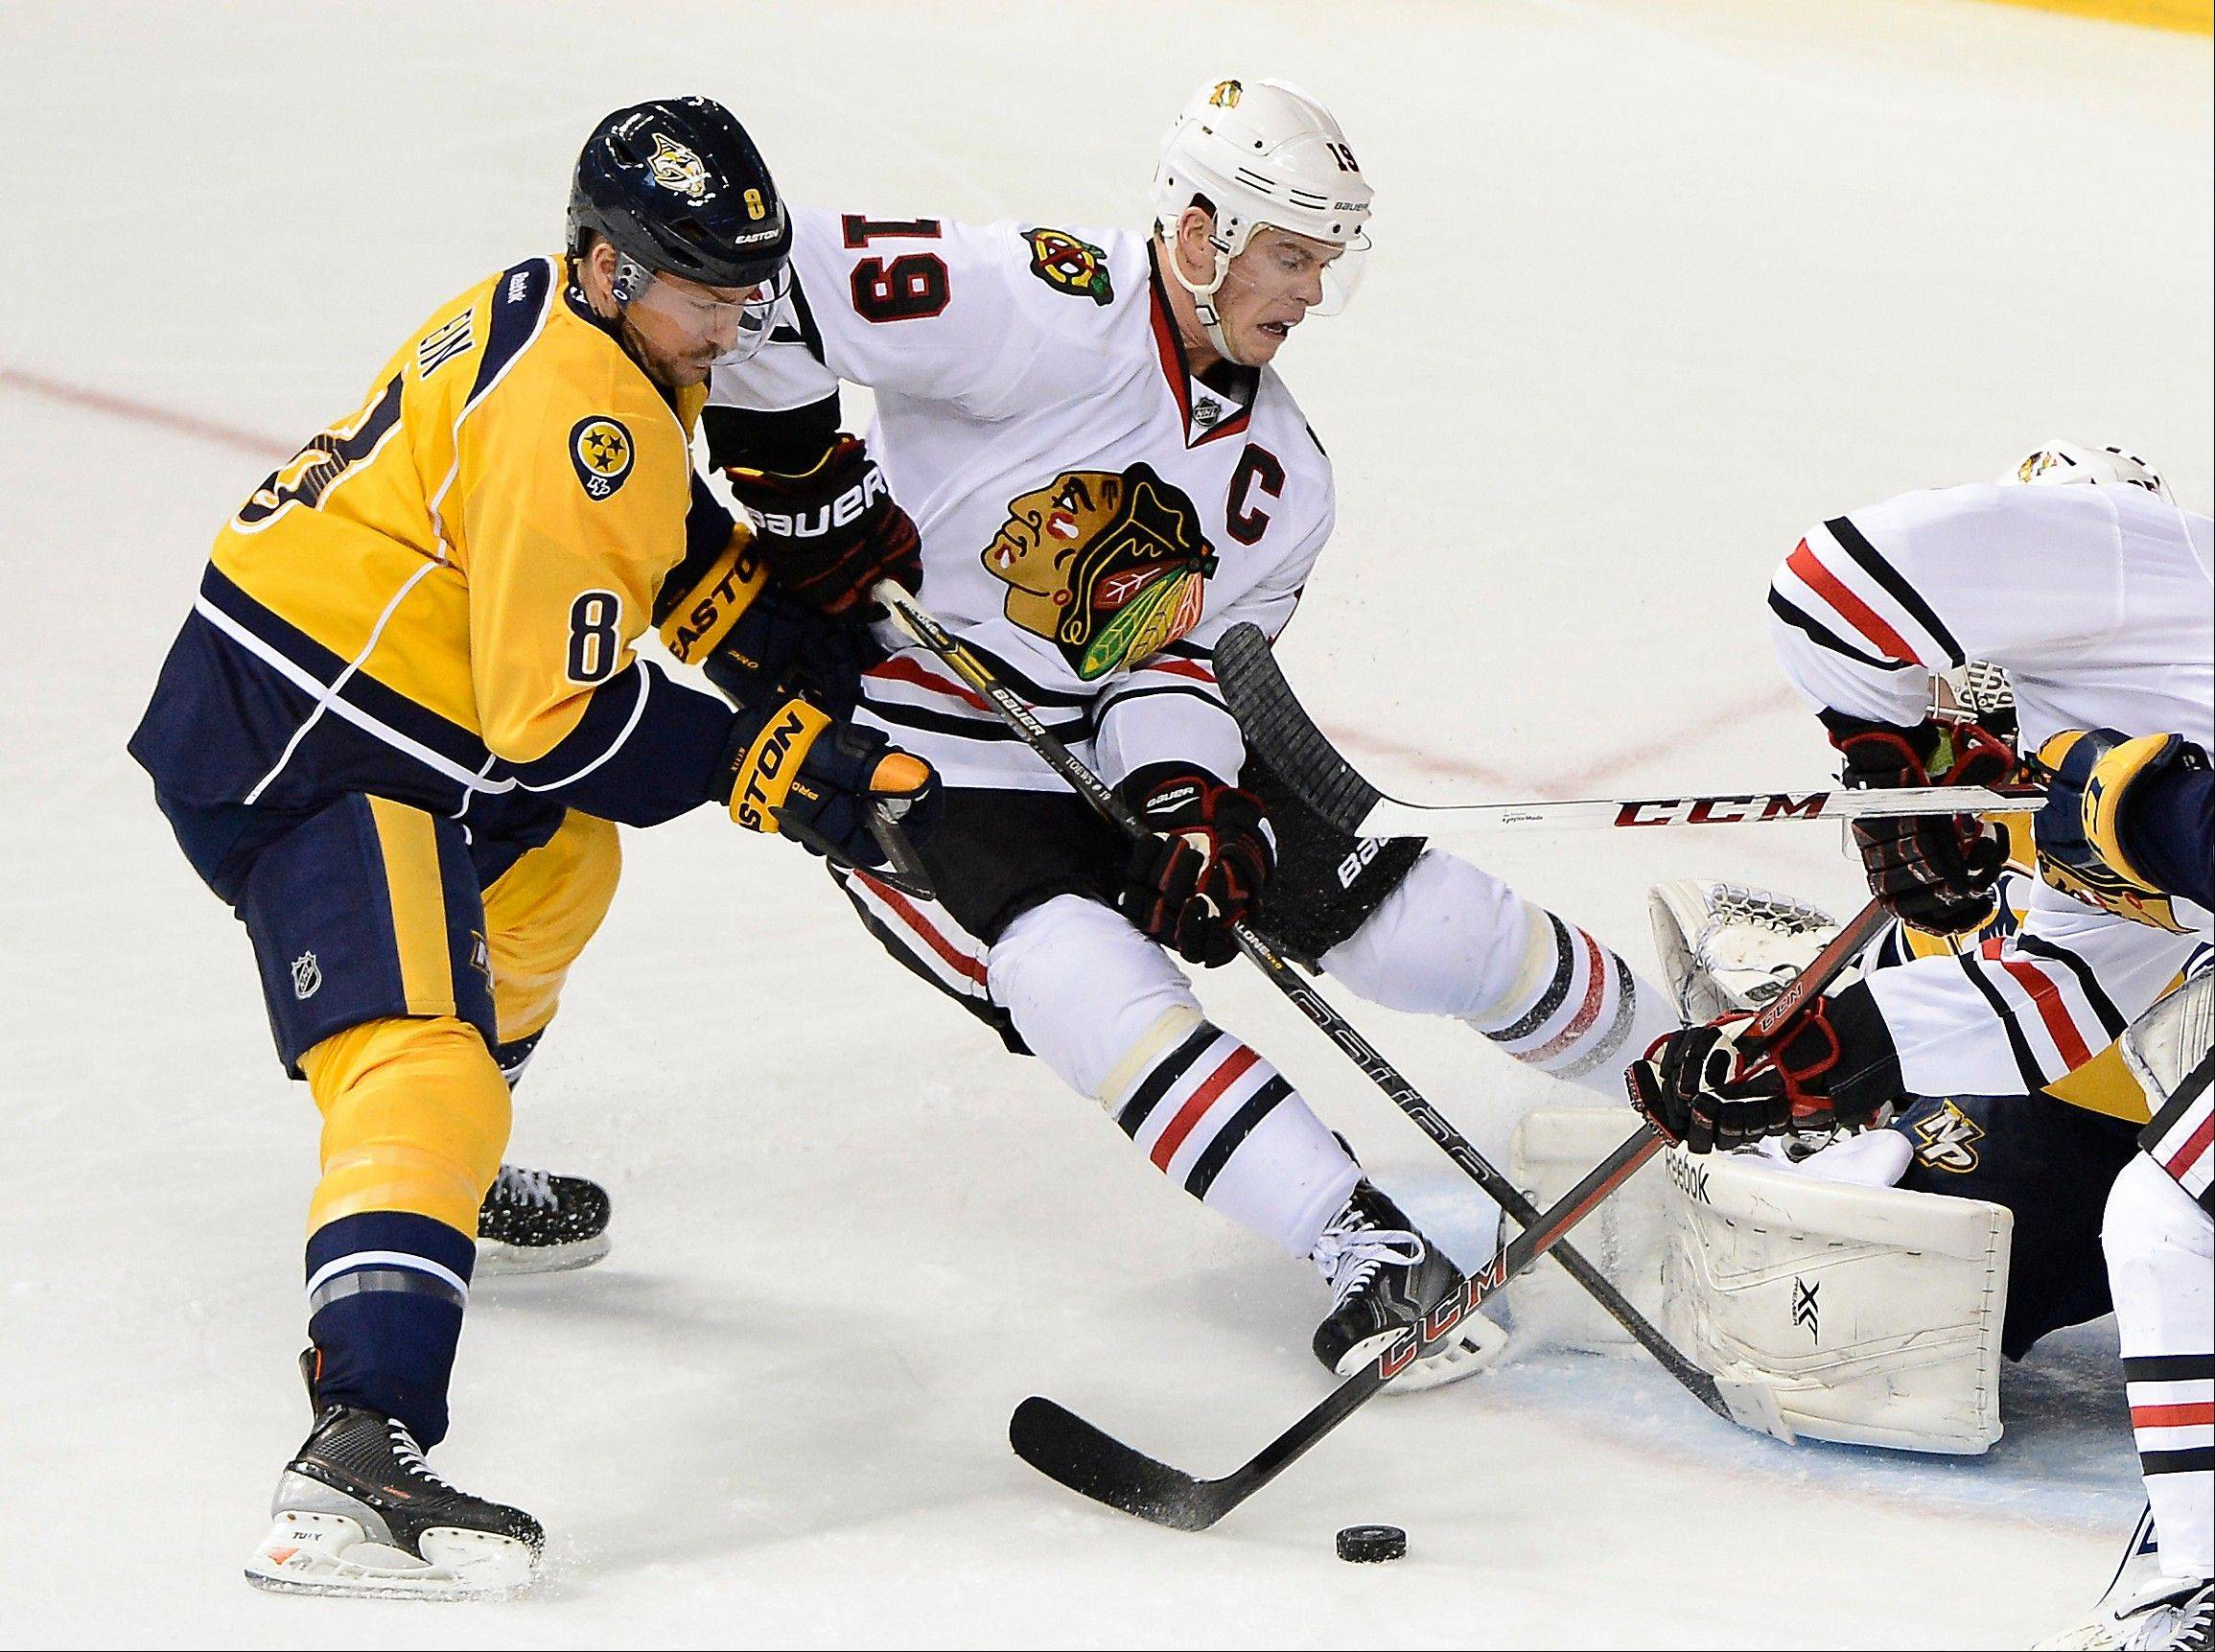 Predators defenseman Kevin Klein (8) stops Blackhawks center Jonathan Toews (19) from shooting the puck in front of the net during Saturday's game in Nashville.